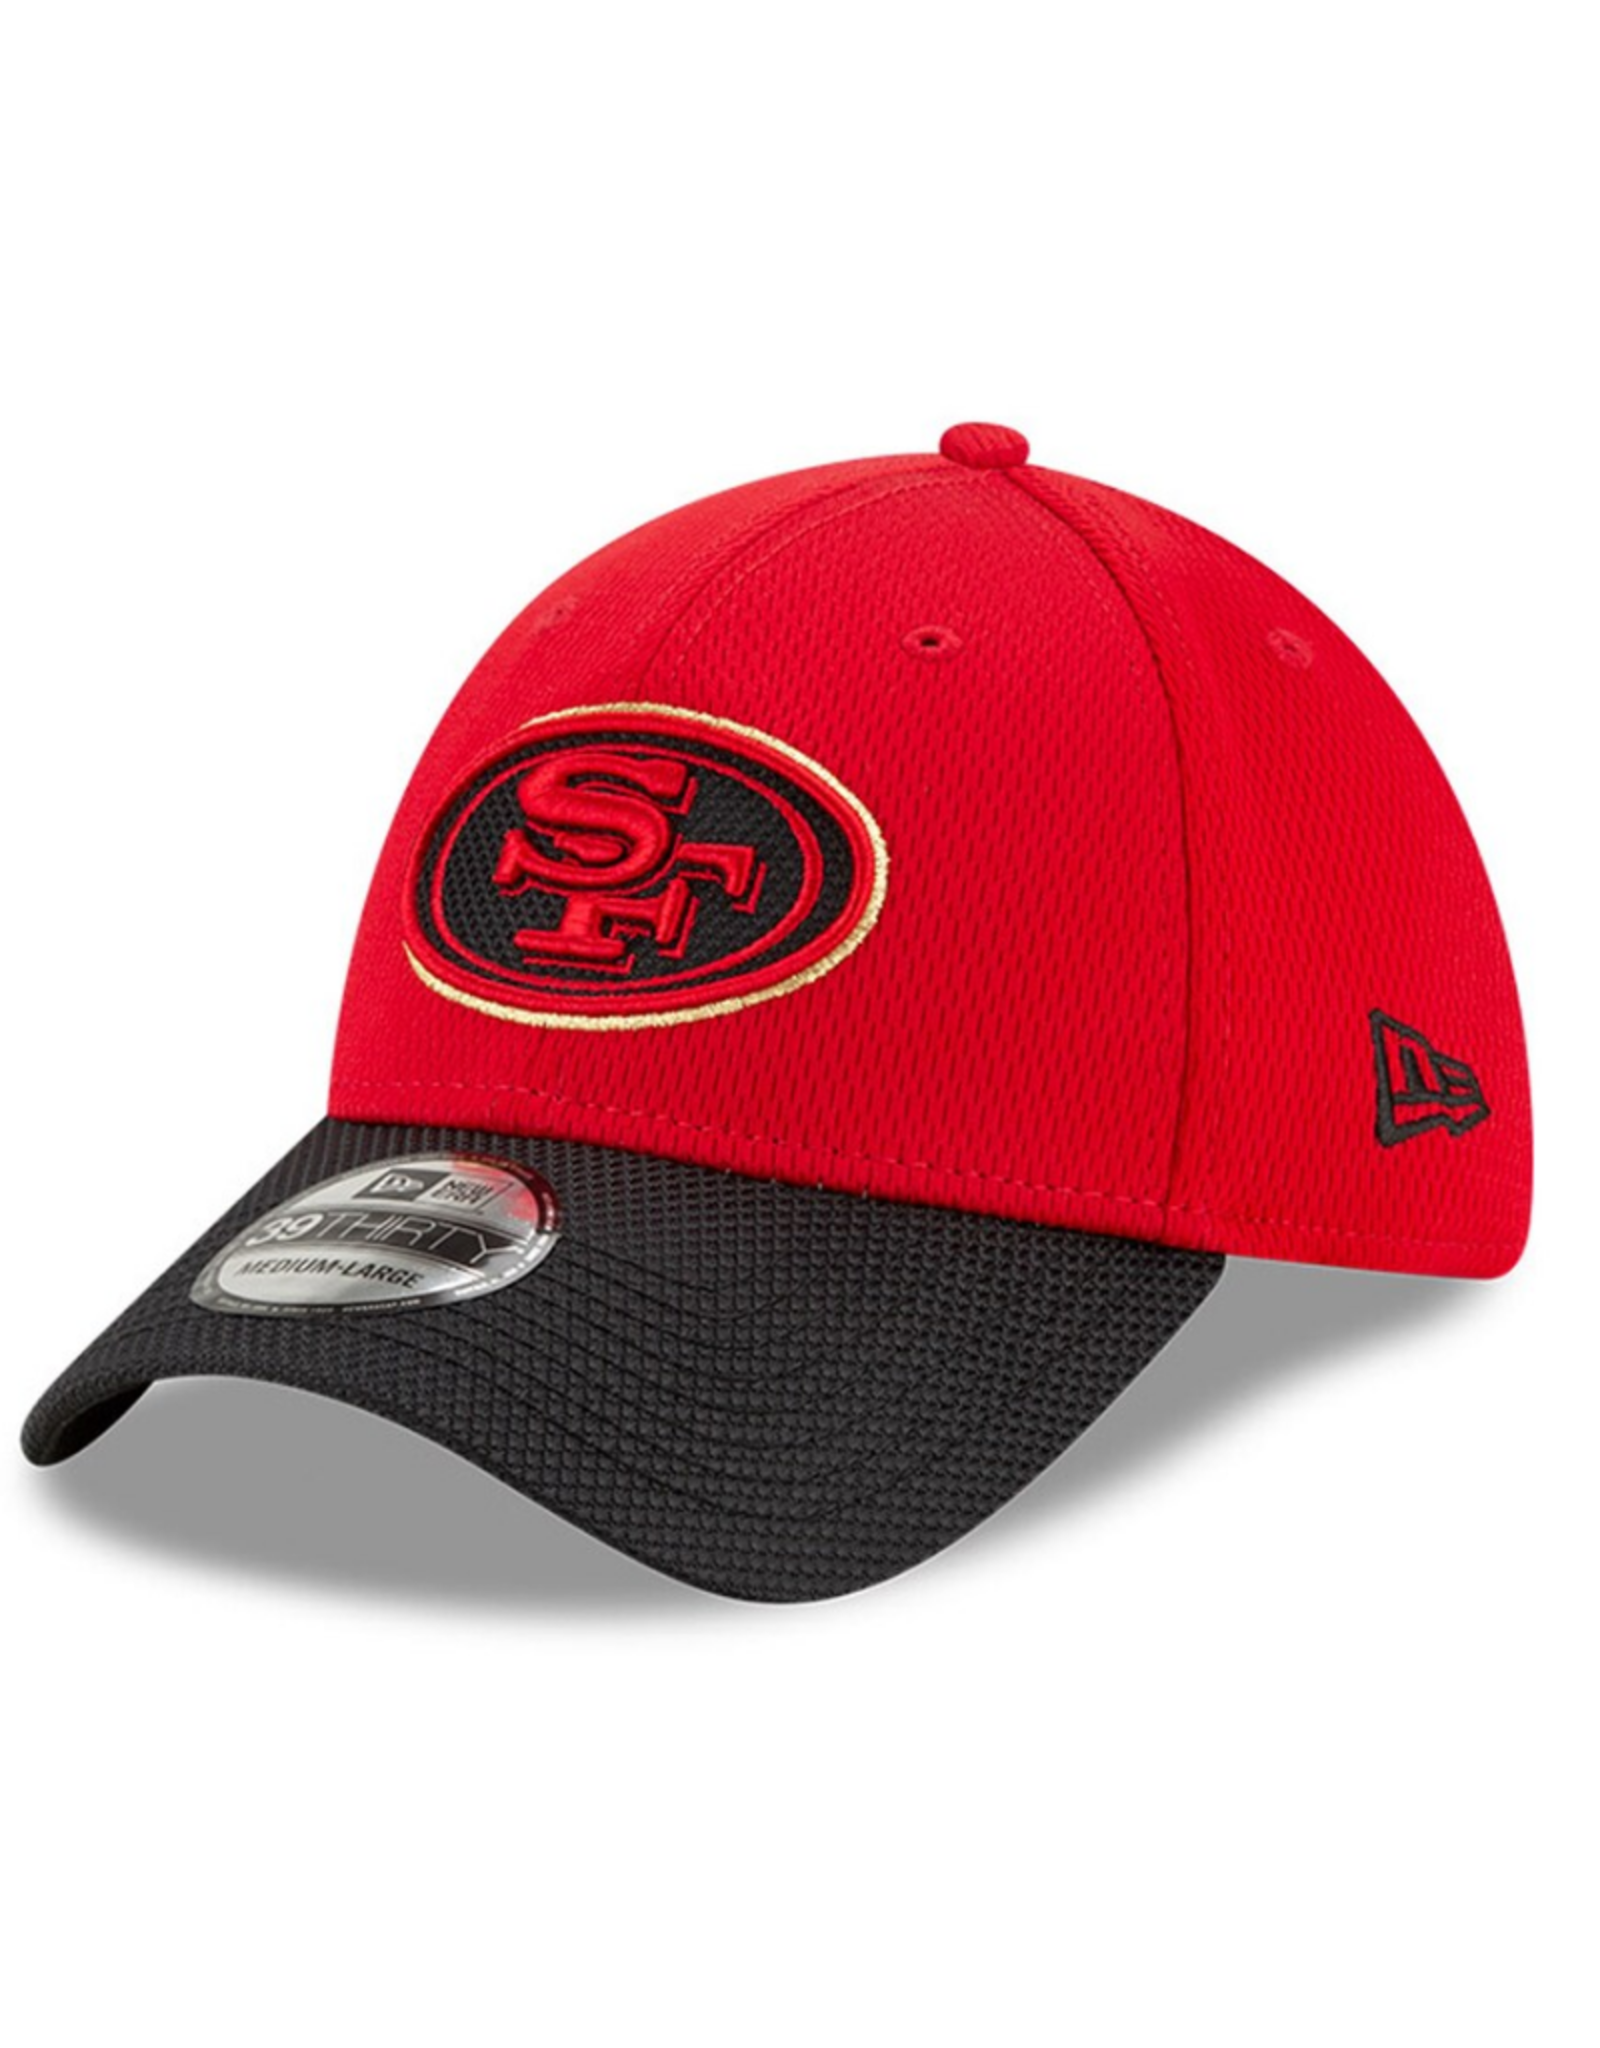 New Era '21 Sideline Road 39THIRTY San Francisco 49ers Red